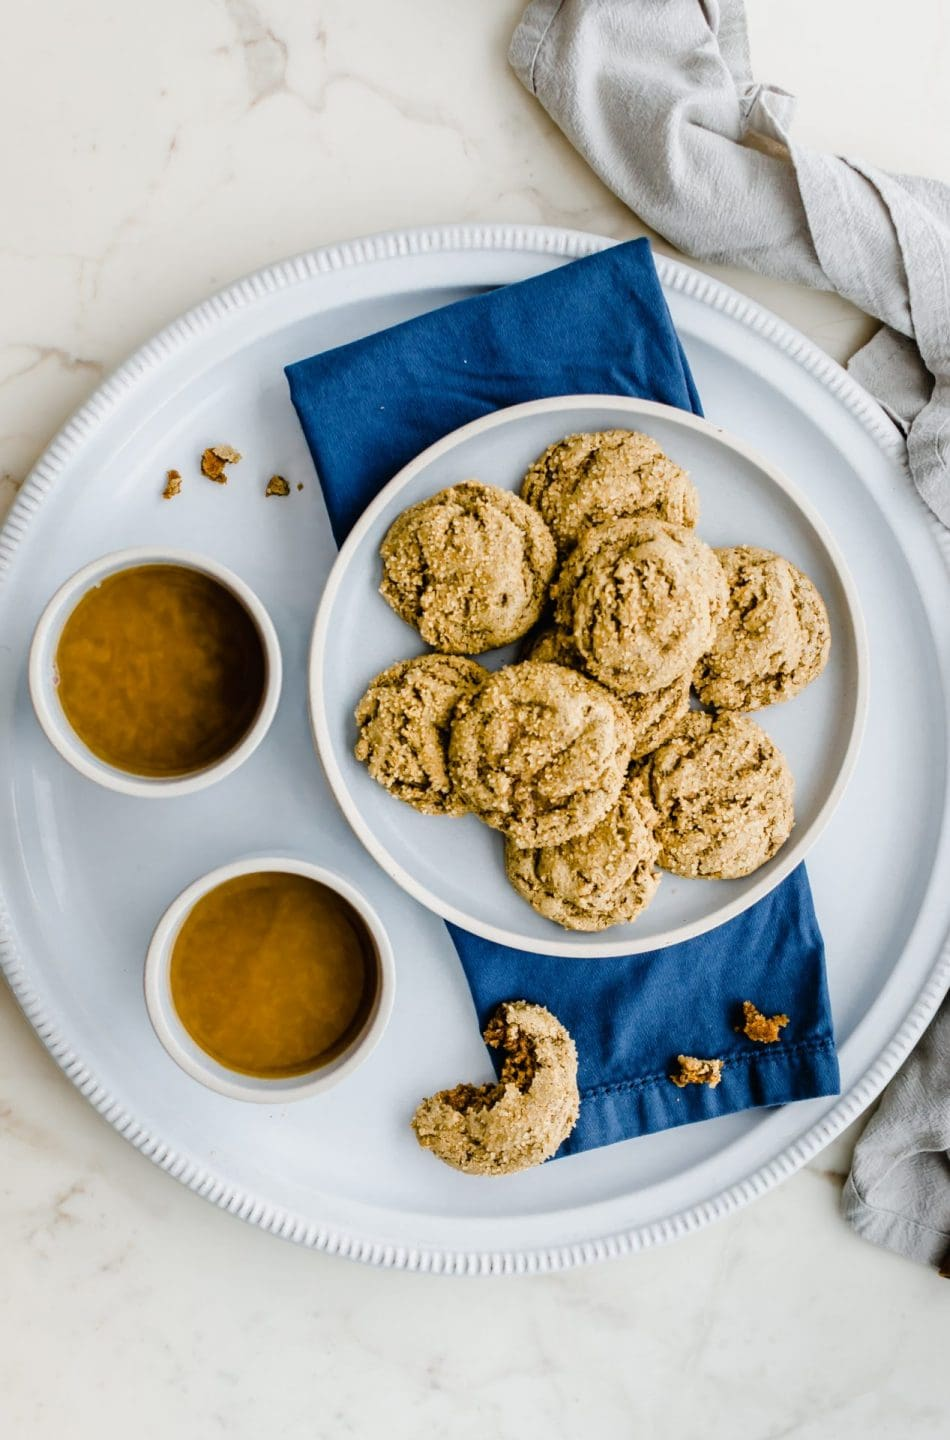 Two blue stone cups of spiced tea on a white platter with a plate of ginger cookies on the side.